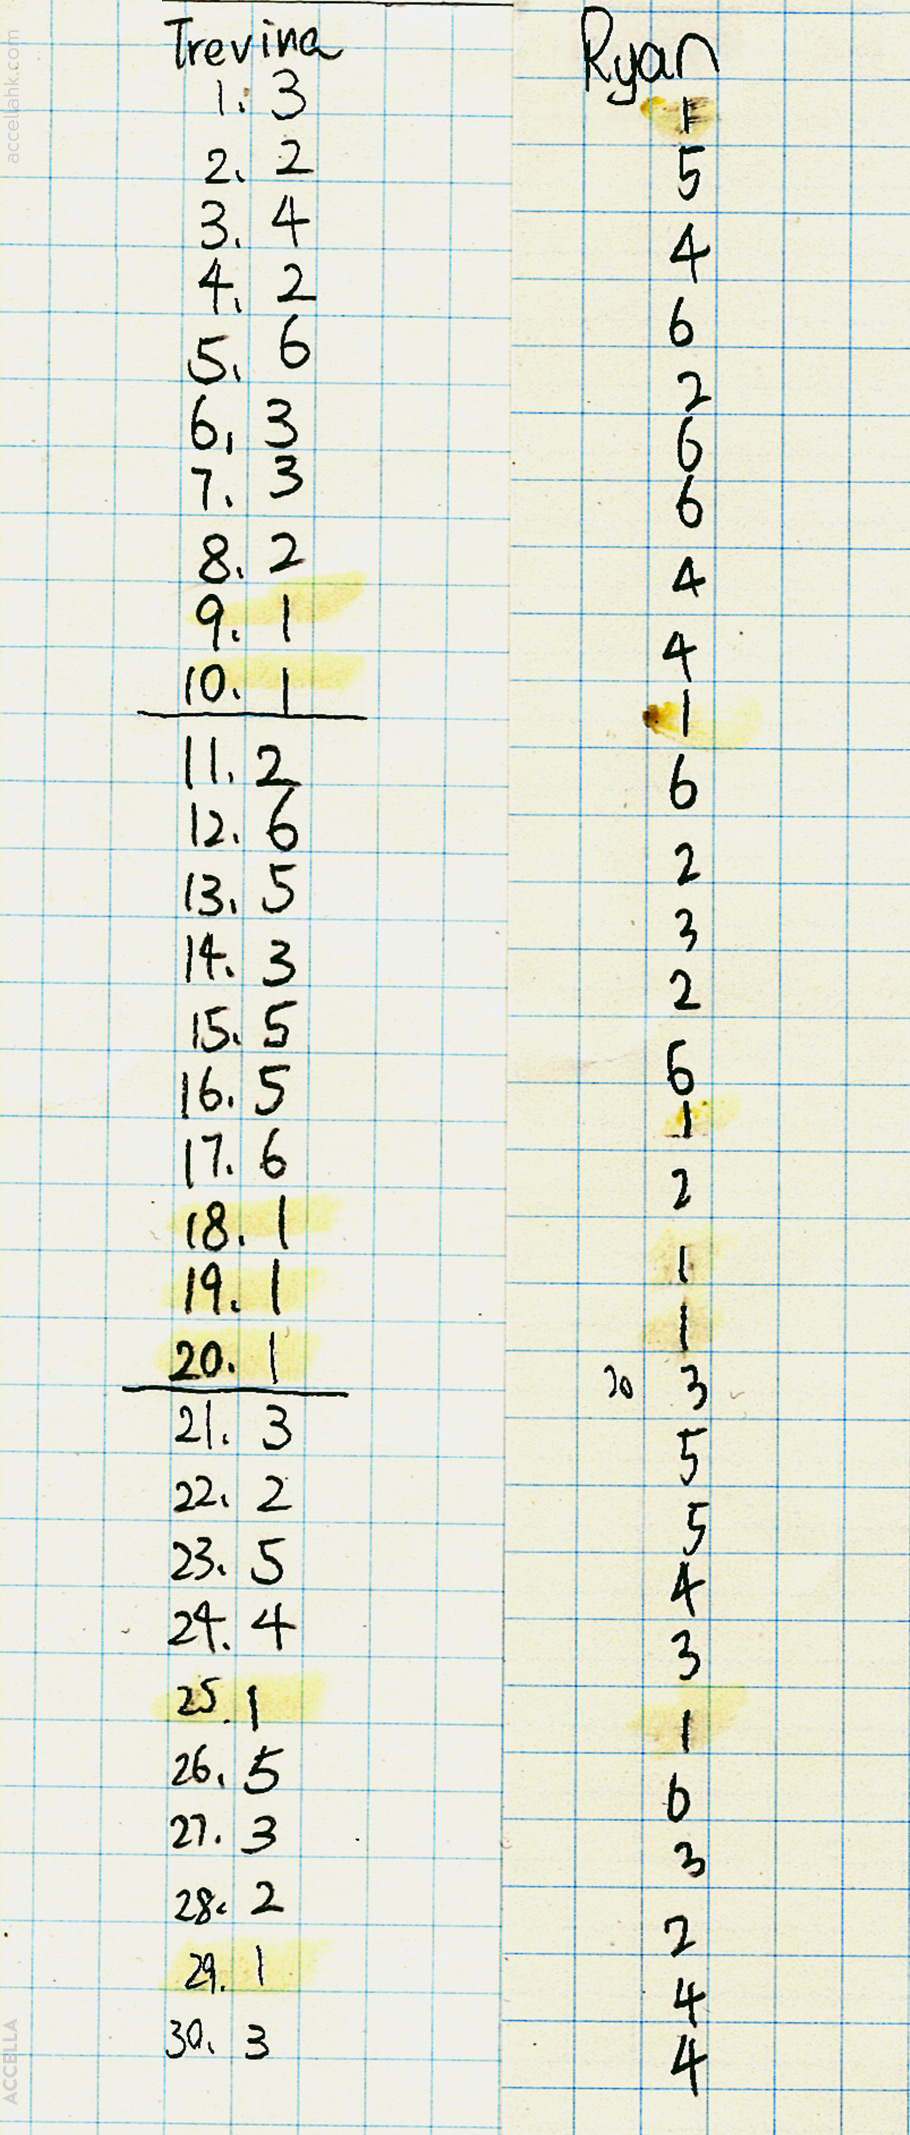 Outcomes of thirty die rolls, carried out by two students.